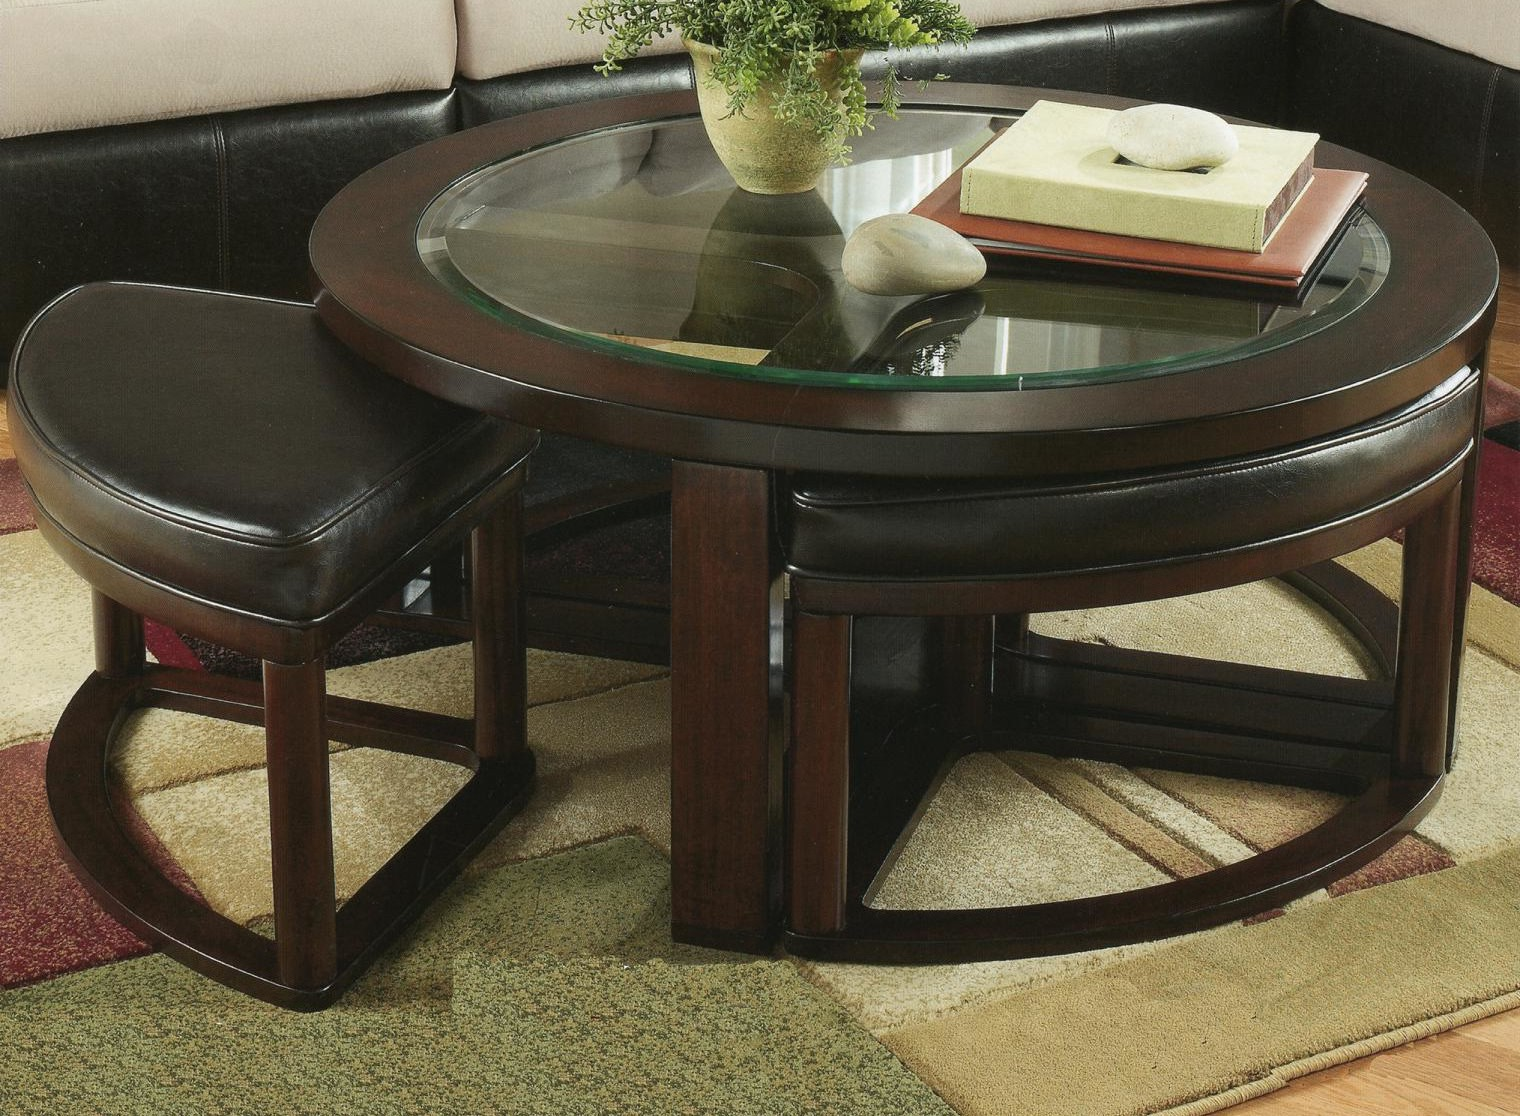 Coffee table with chairs underneath roy home design for Coffee tables zara home